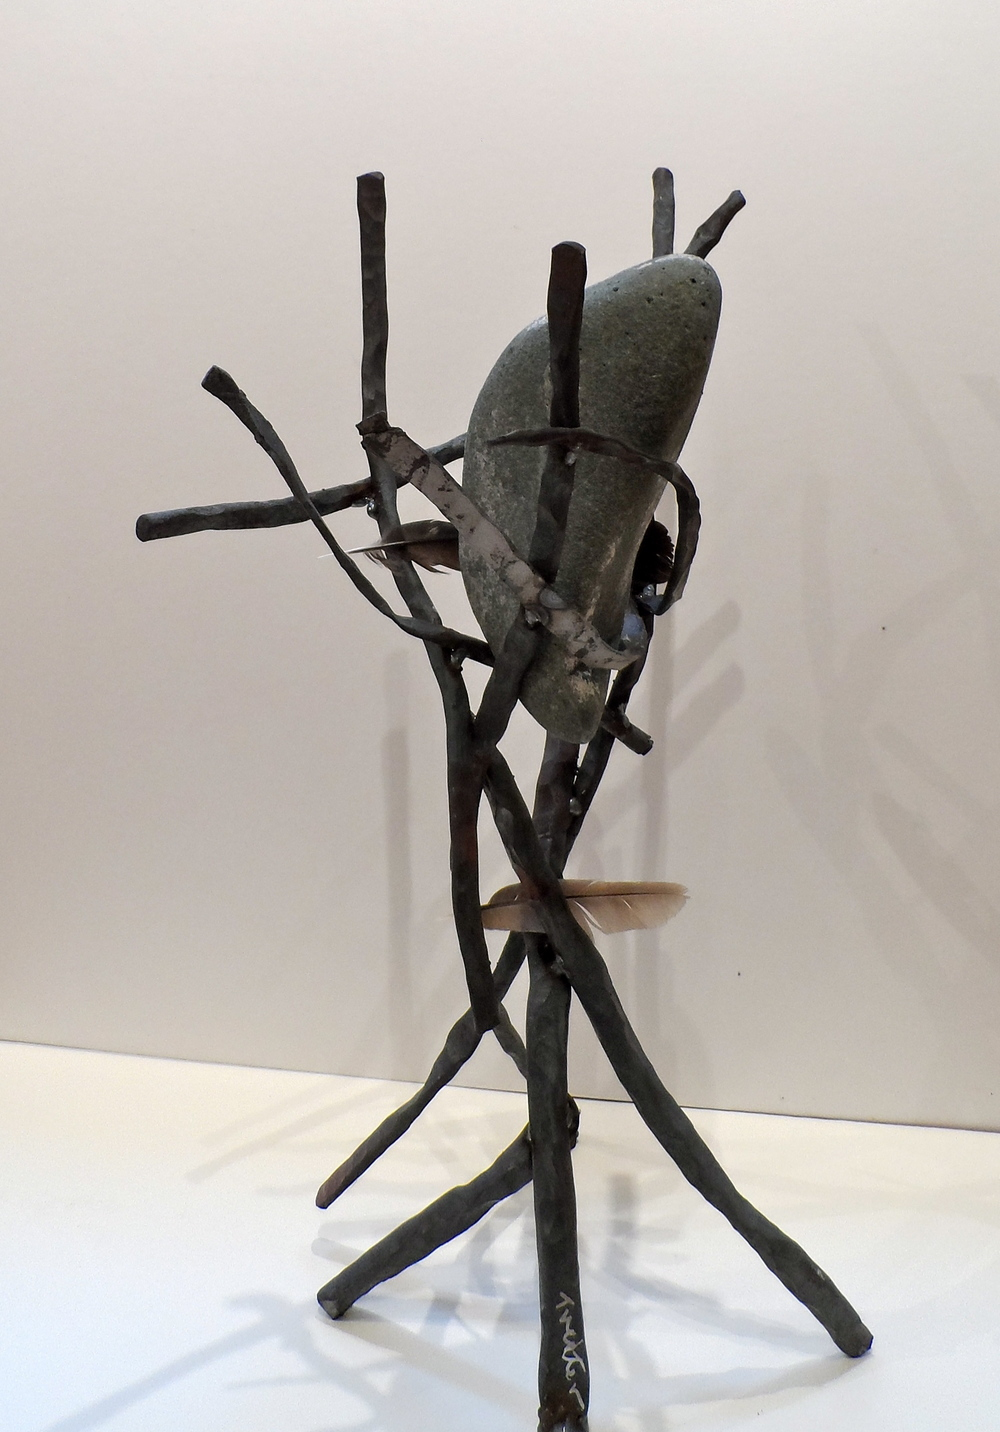 Untitled 4 (sculpture)